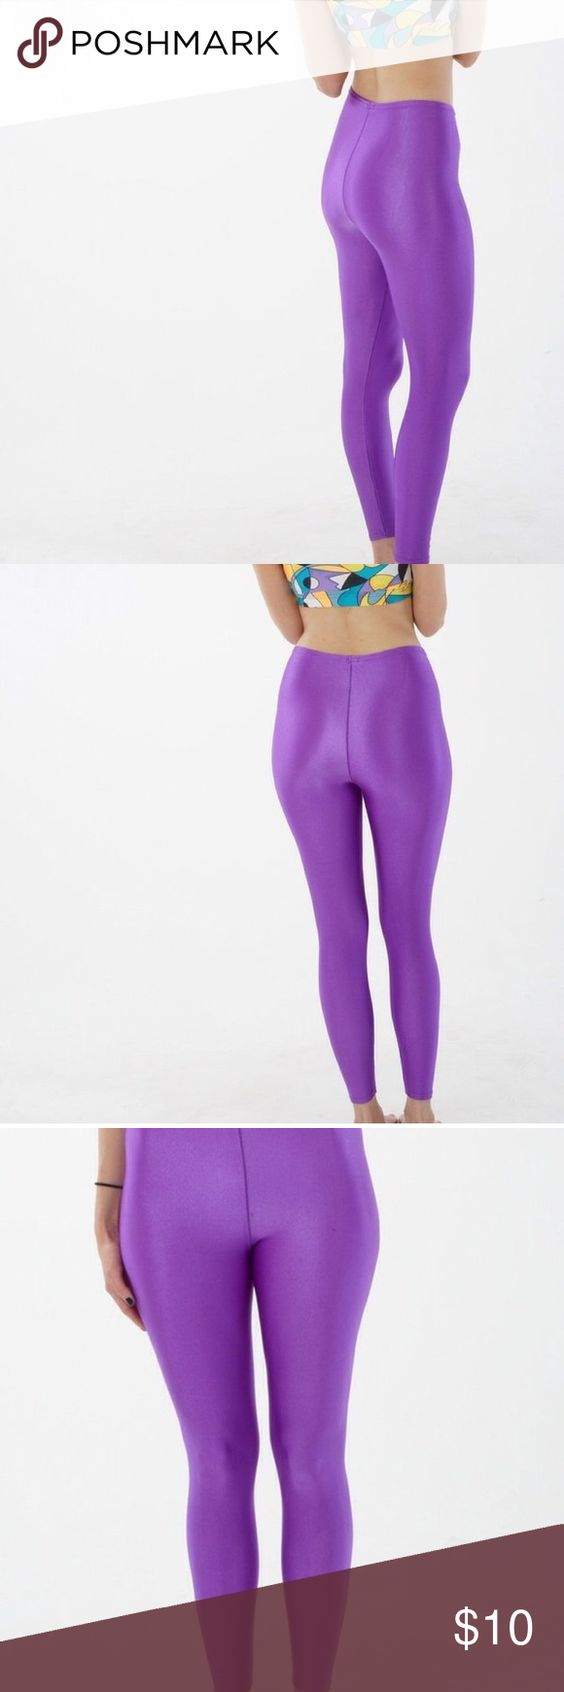 v i n t a g e 80s workout pants Vintage 80s Pro Spirit leggings in bright purple. These leggings have a super high waist and are perfect for working out or wearing out. Size marked small. 85% nylon, 15% Lycra. Two very small spots in front, one spot in back. #leggings #workout #80s Vintage Pants Leggings